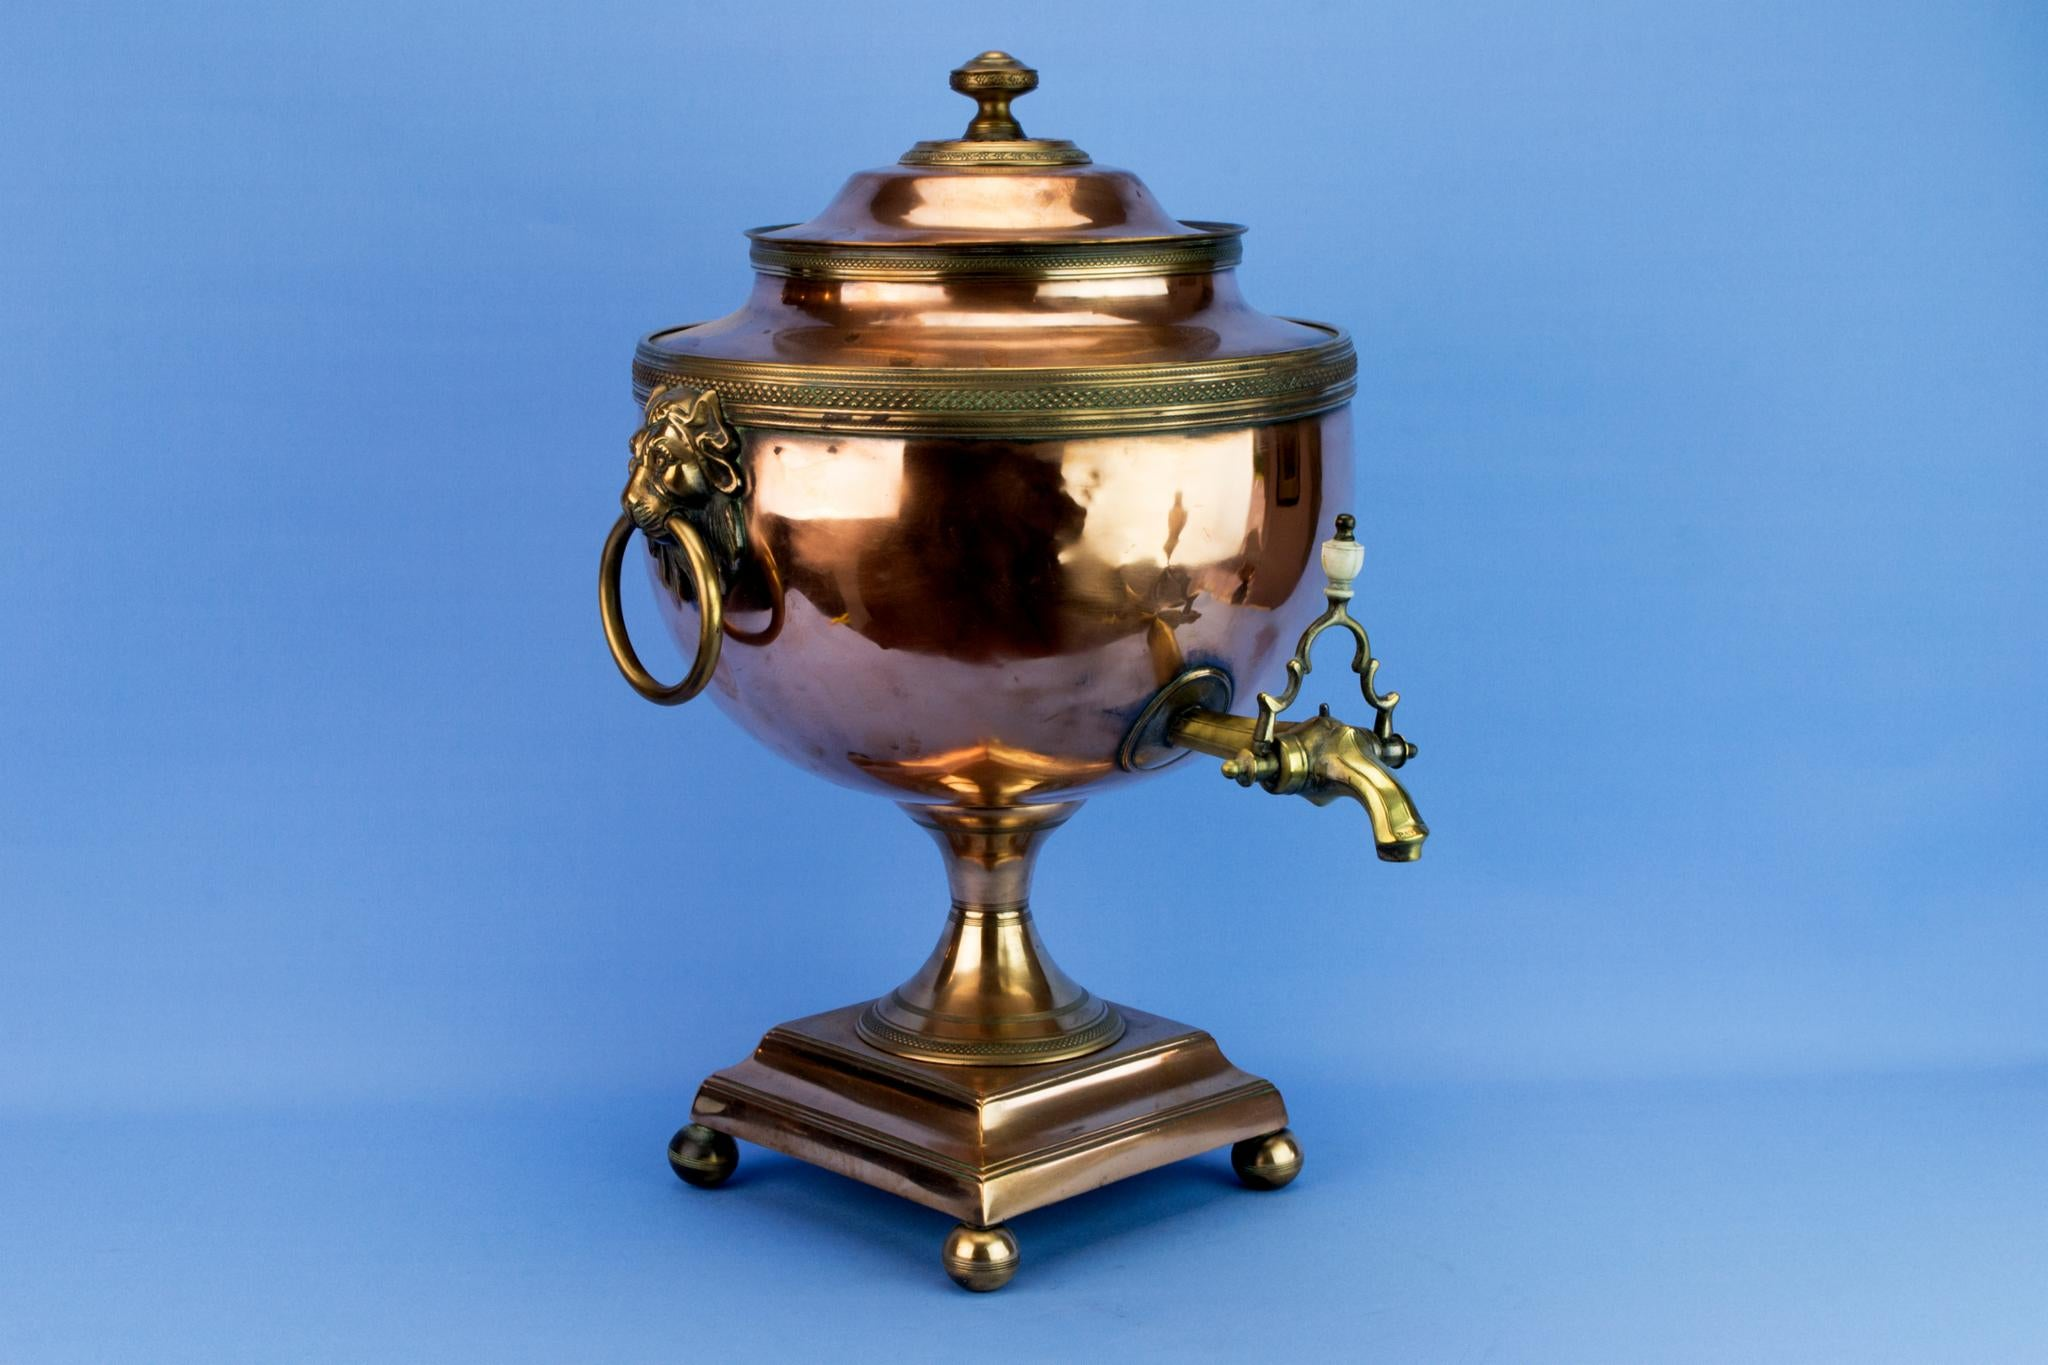 Regency Copper Hot Water Urn, English Early 1800s